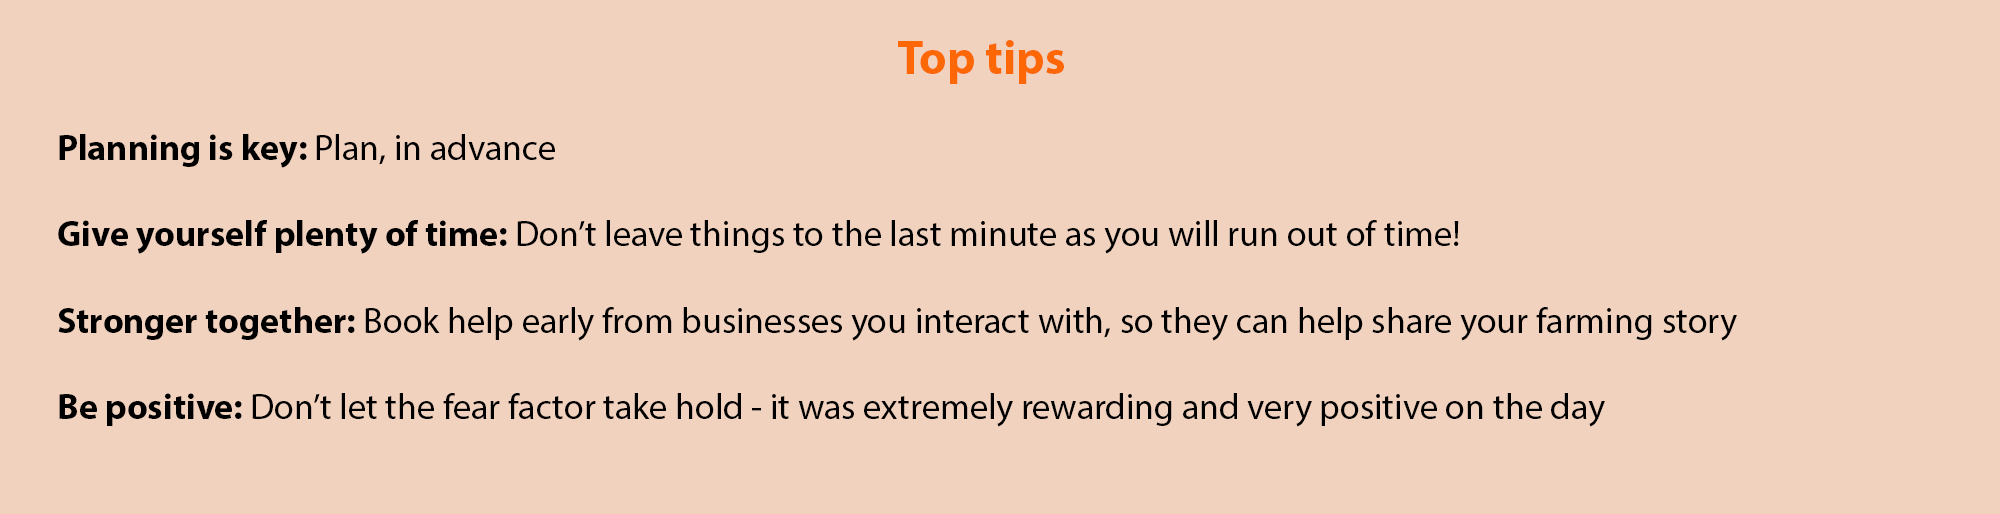 OFS_CASE_STUDY_TOP_TIPS_OLDERSHAWS.png#asset:4528